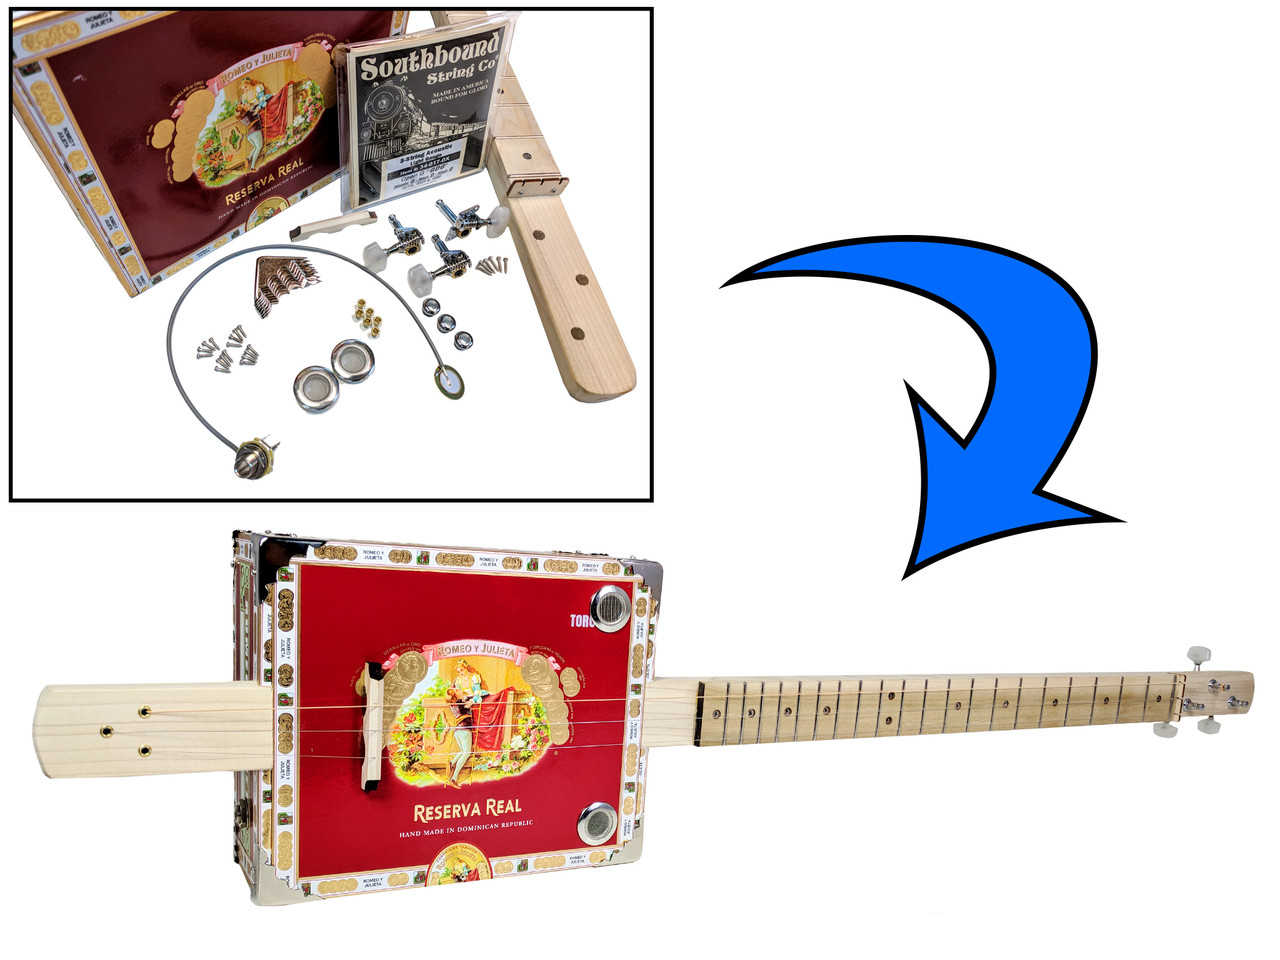 Complete Diy 3 String Fretted Cigar Box Guitar Kit With Neck Wiring Harness Includes Acoustic